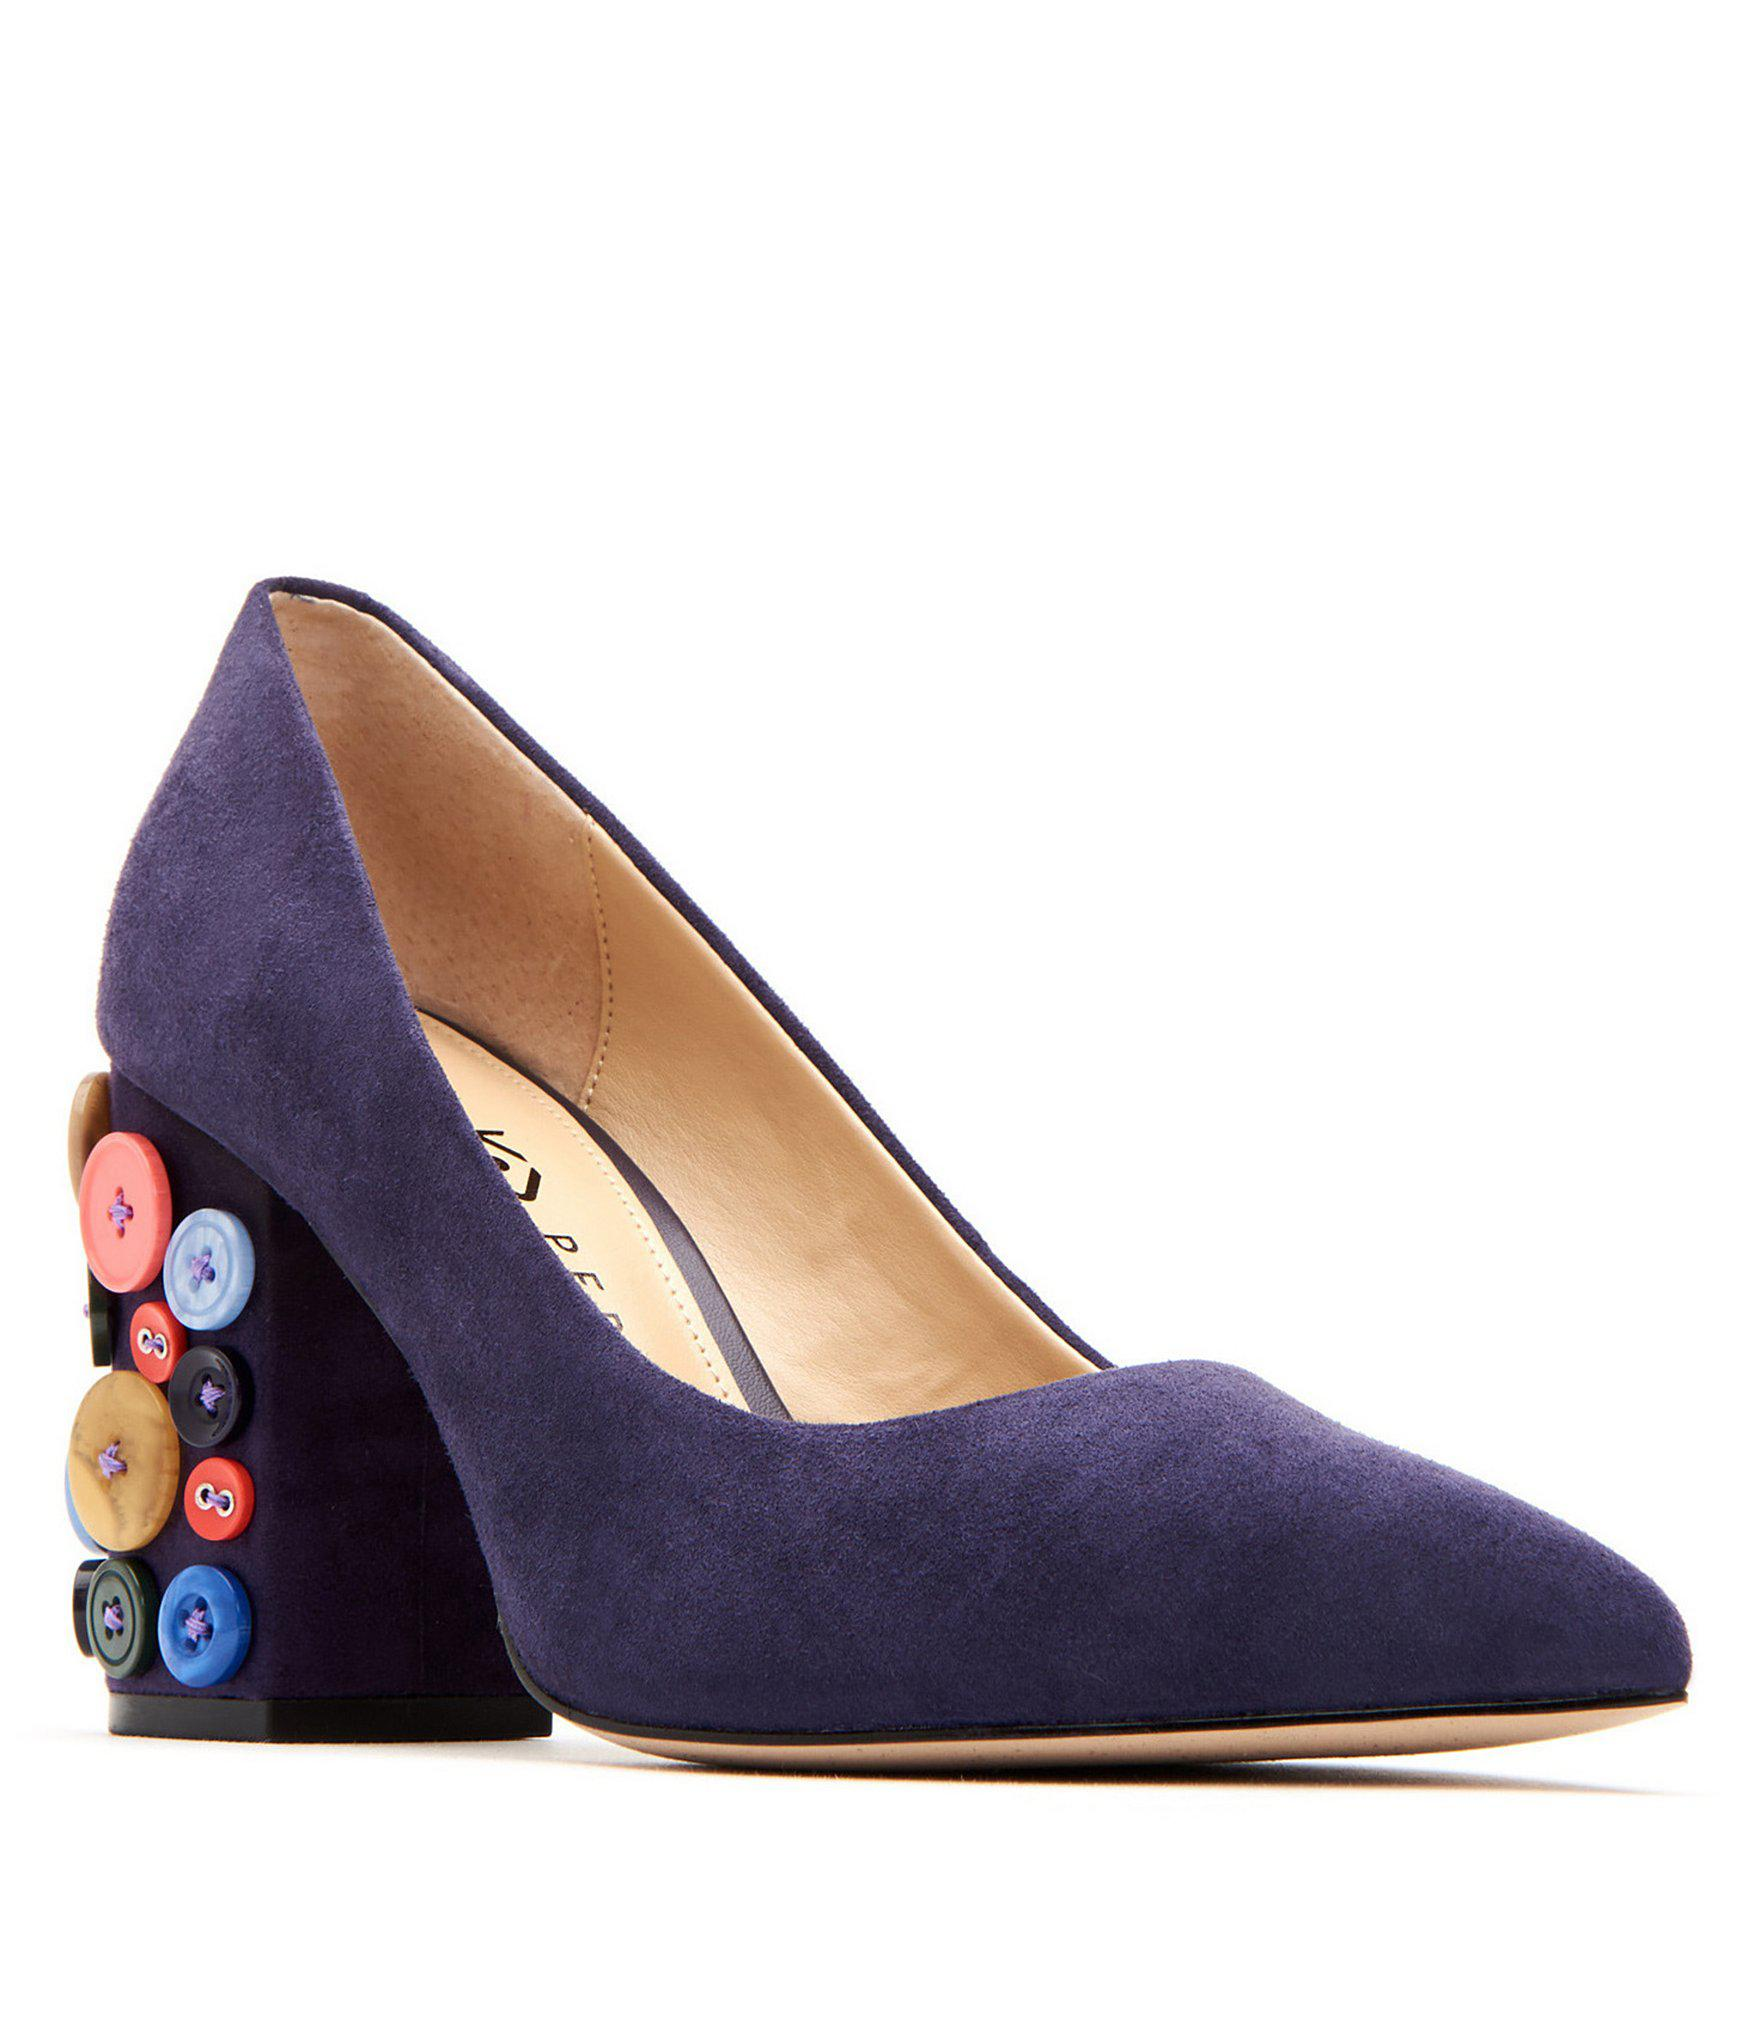 c4fc220ed657 Lyst - Katy Perry The Anjelica Suede Button Detail Block Heel Pumps ...